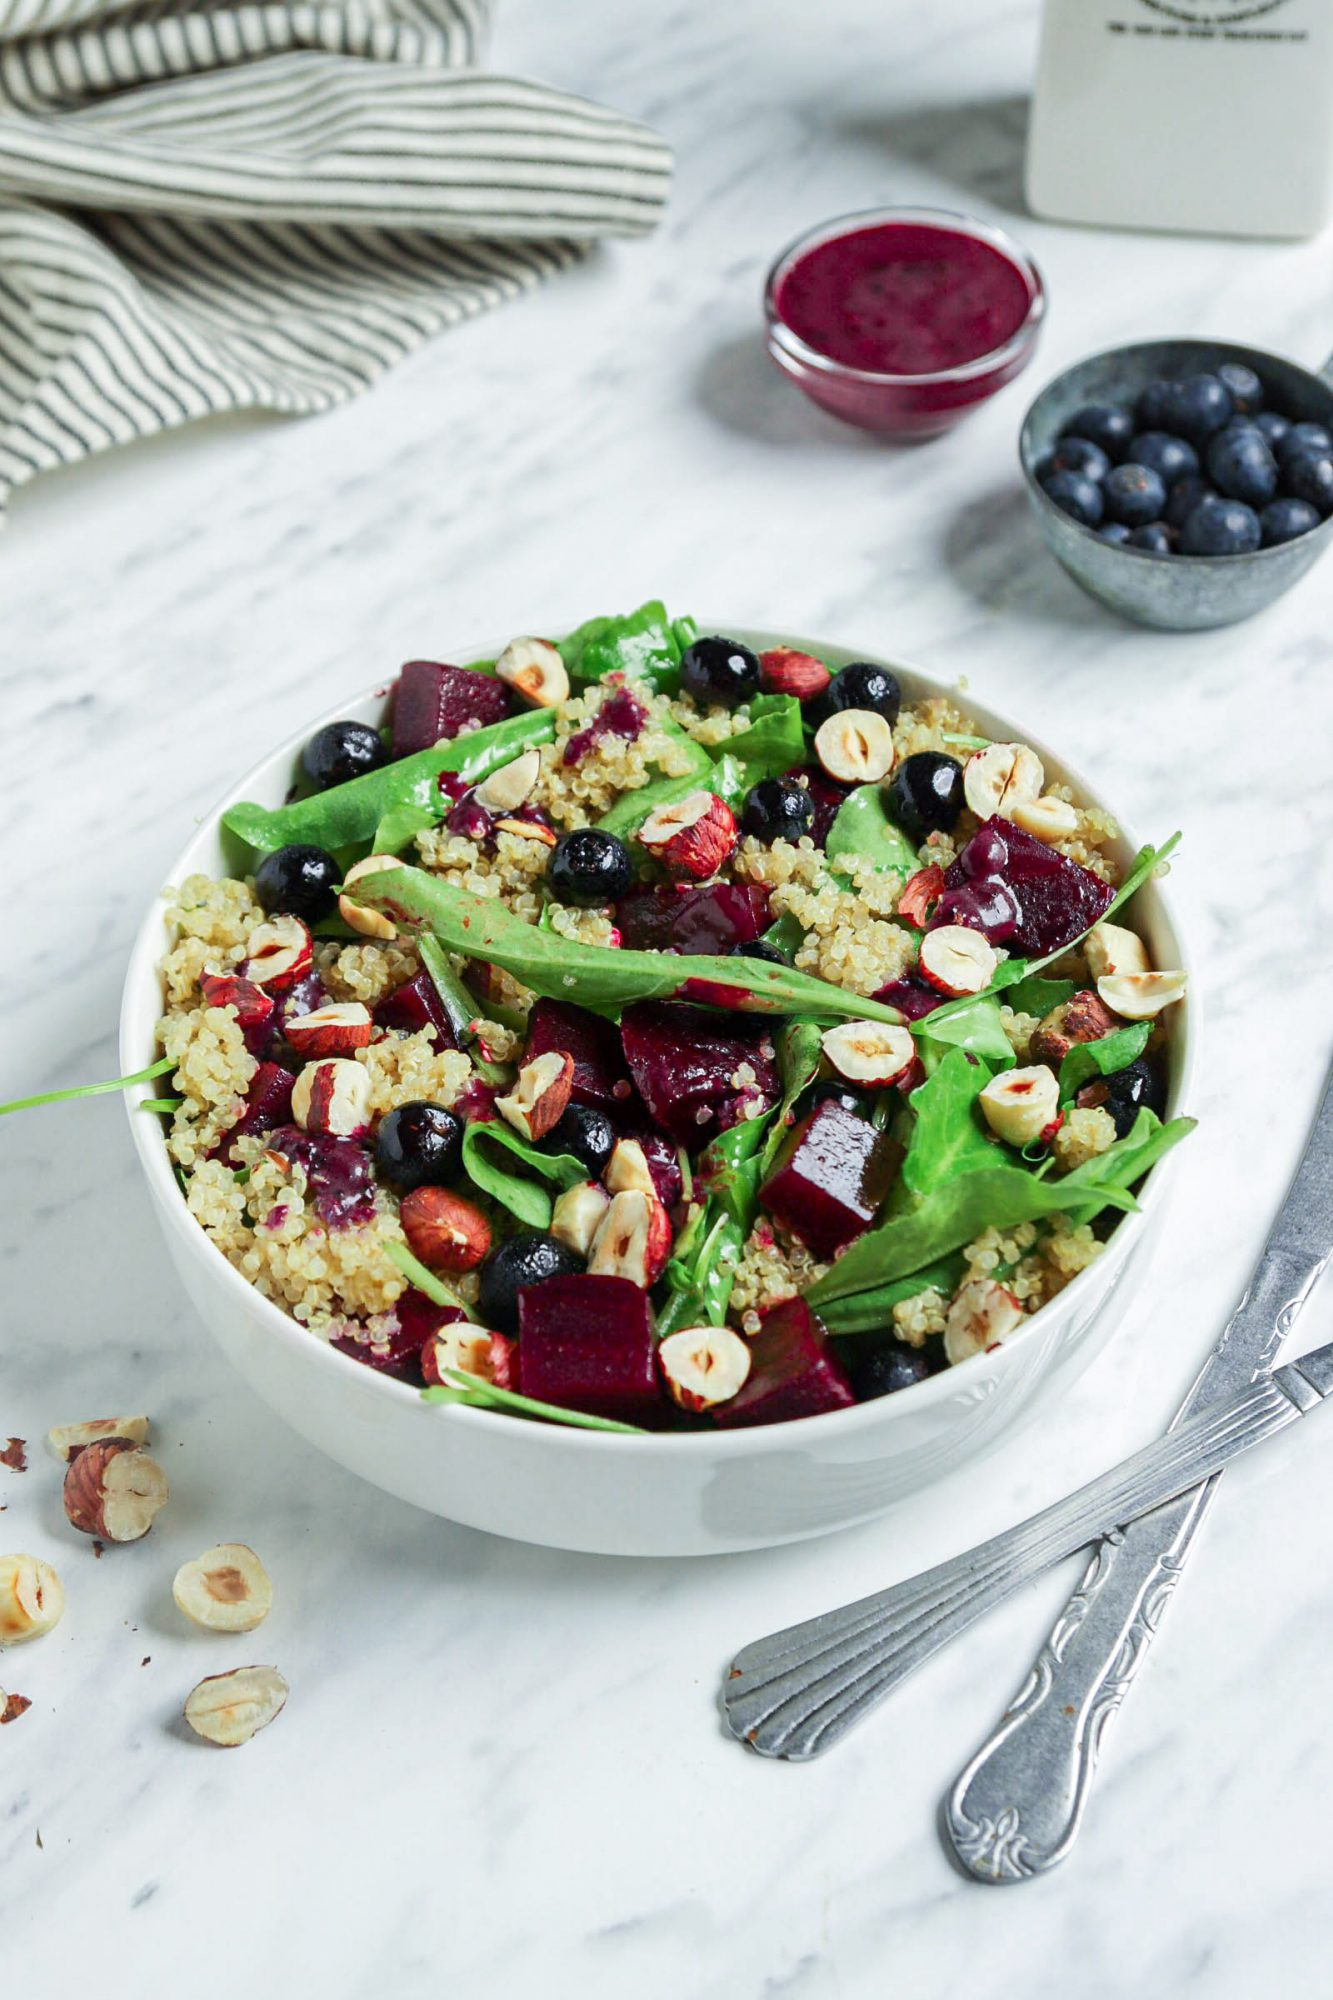 Blueberry and Beet Salad